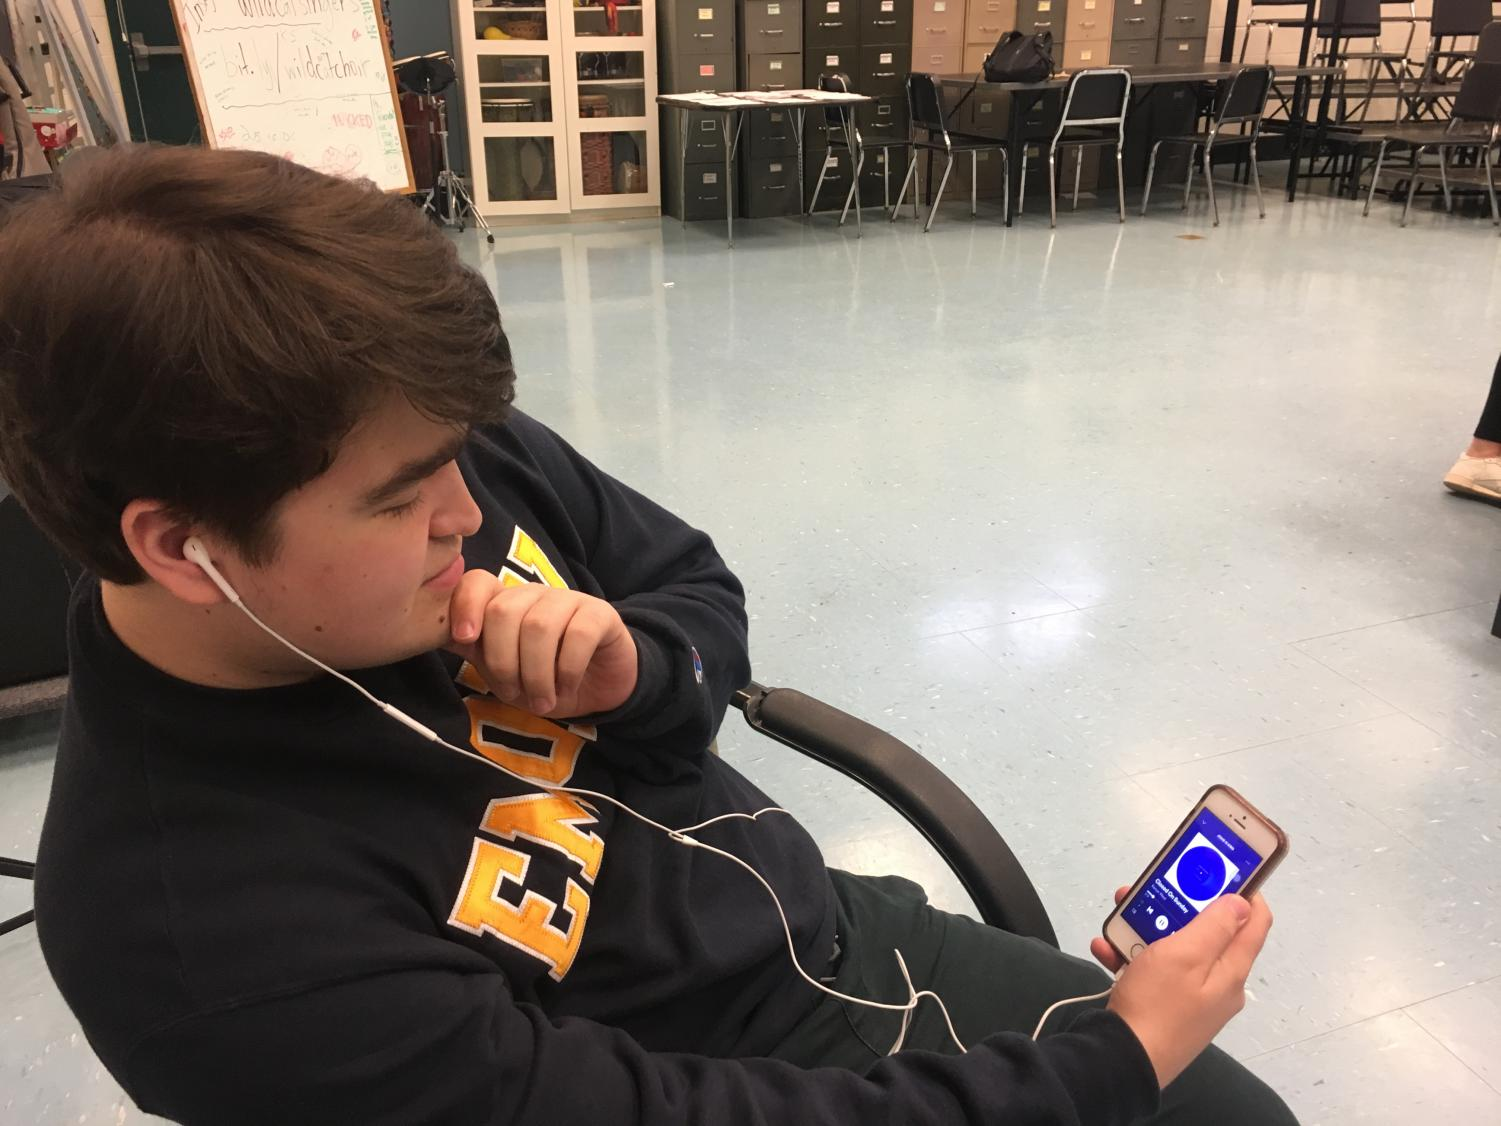 Senior Damir Pimenov listening to